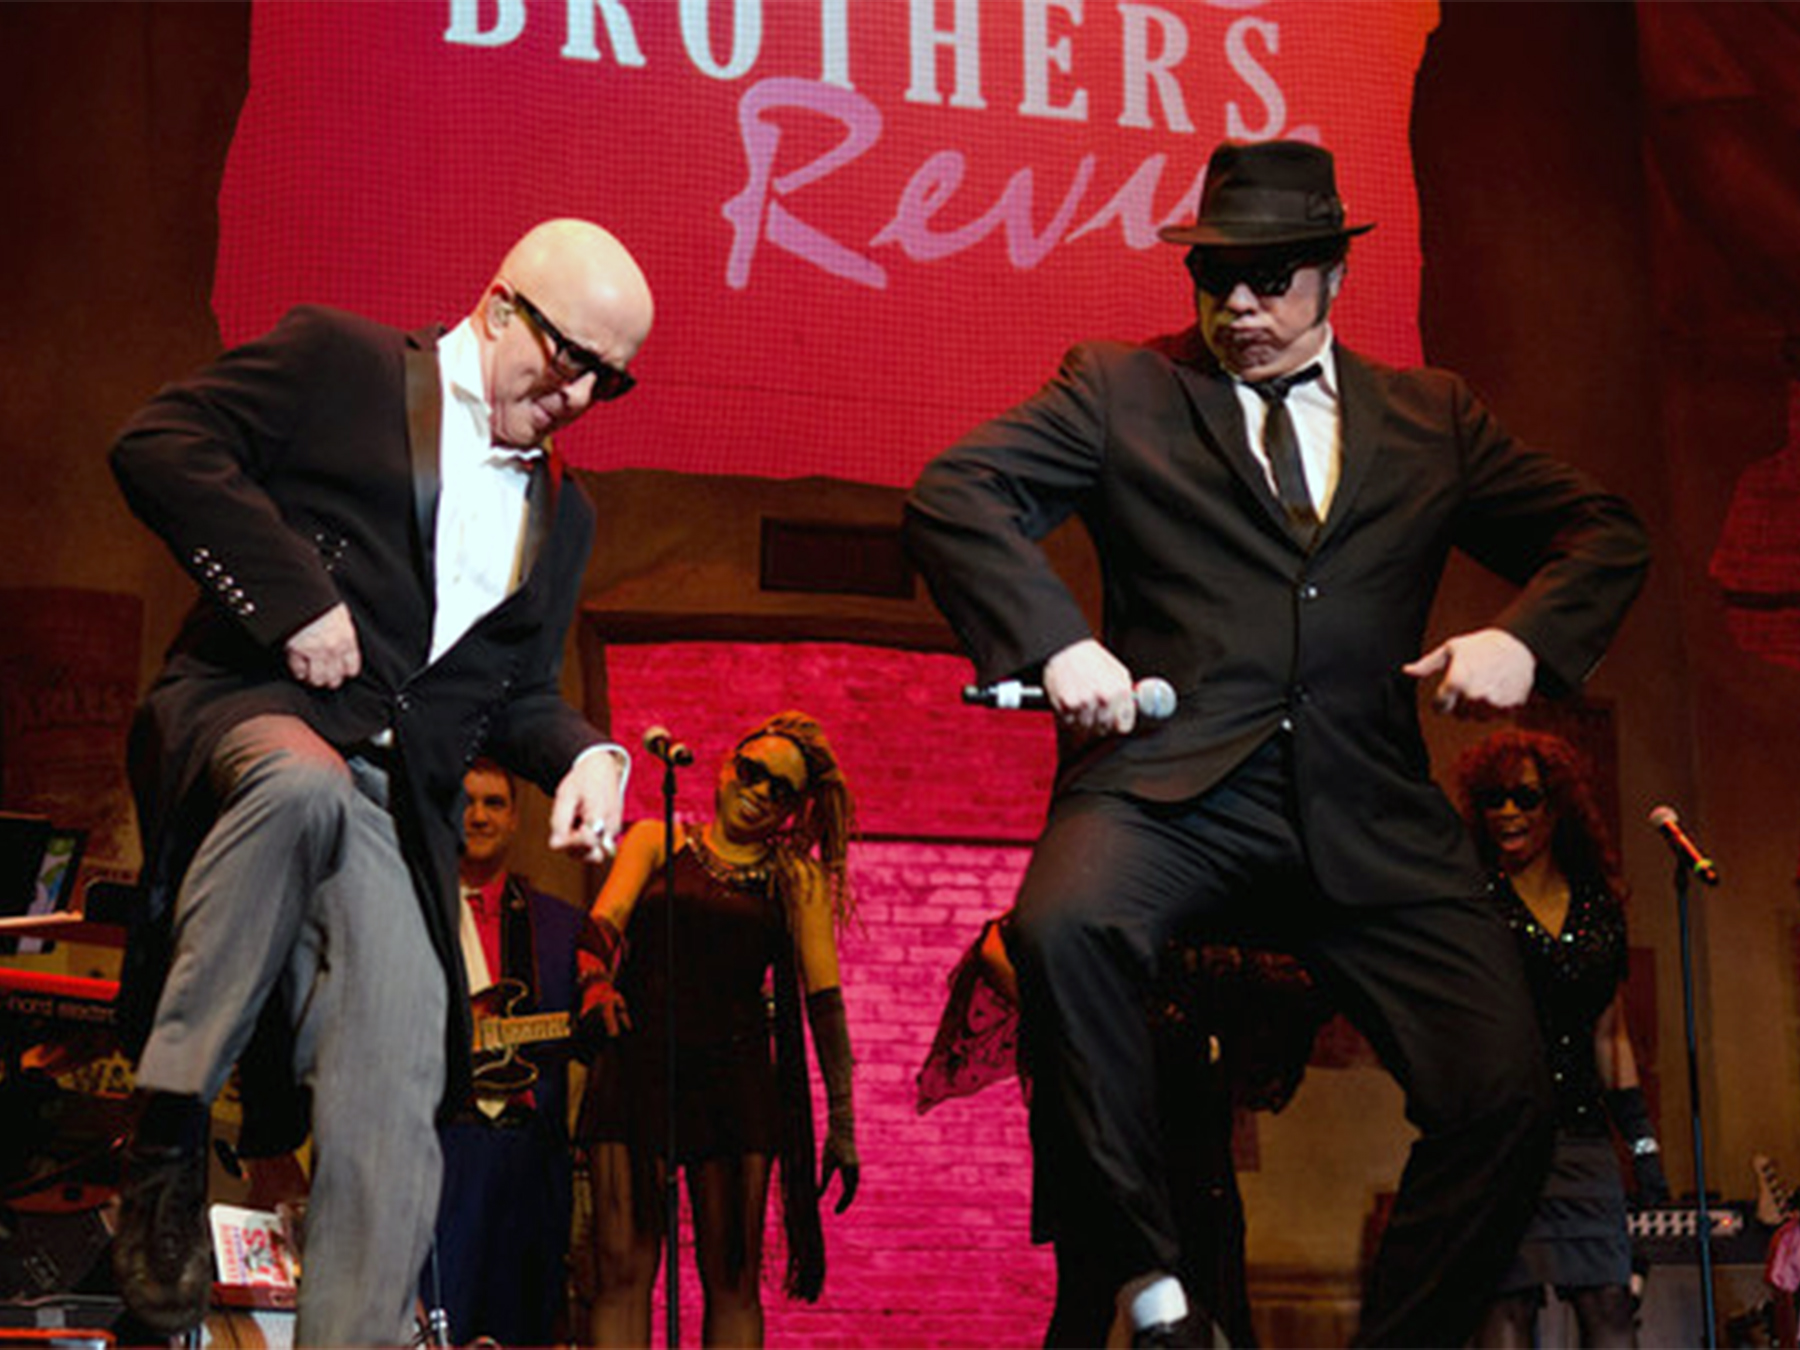 Official Blues Brothers Revue - Publicity Images